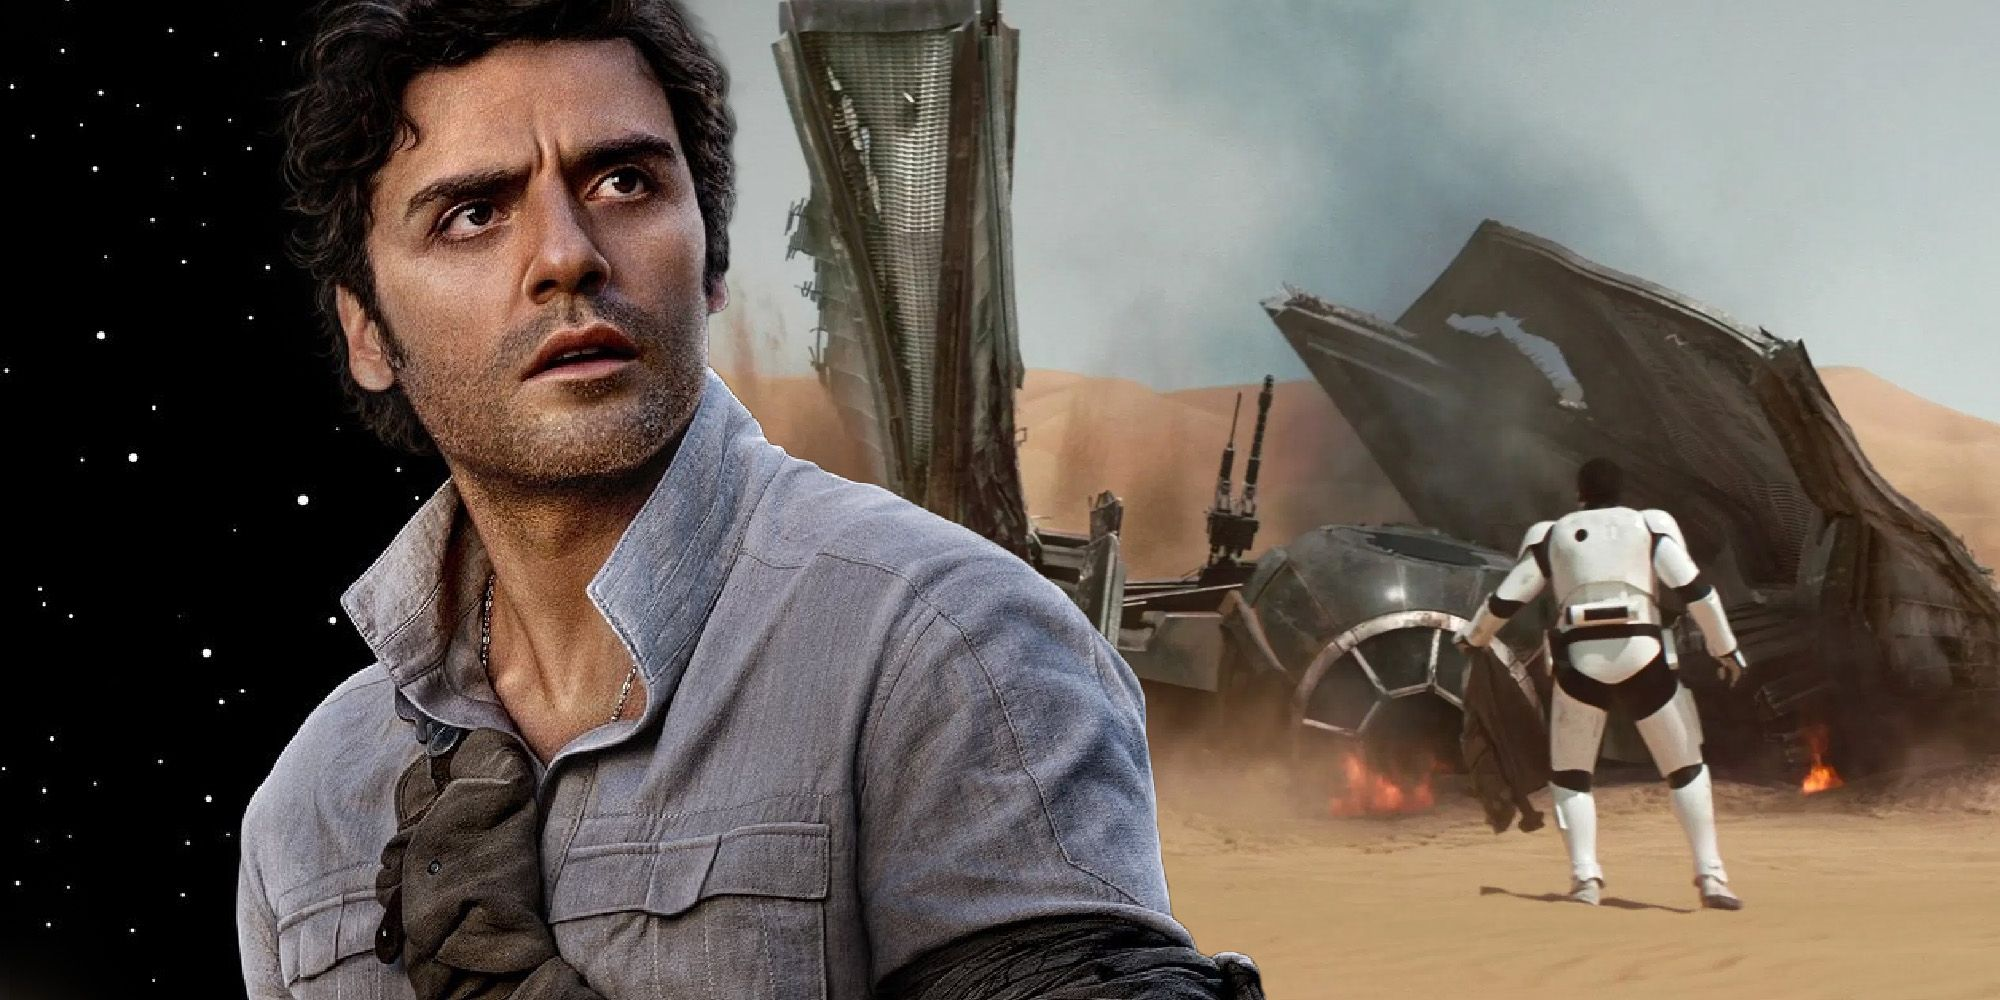 The Force Awakens: How Poe Dameron Survived The Crash On Jakku